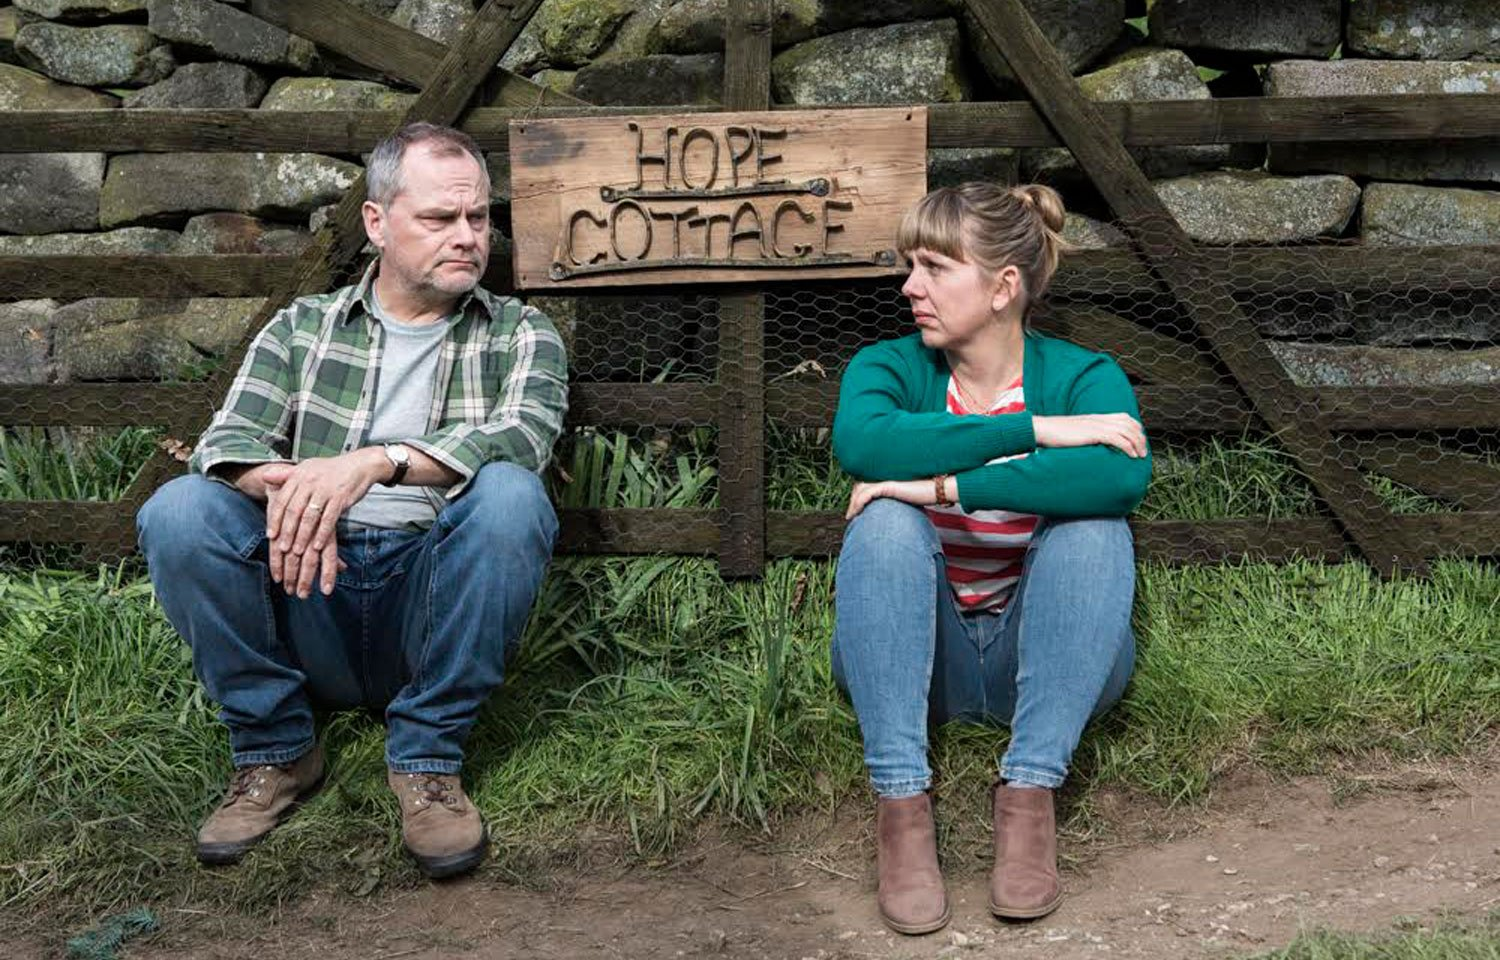 BAD MOVE RETURNS TO ITV THIS AUTUMN